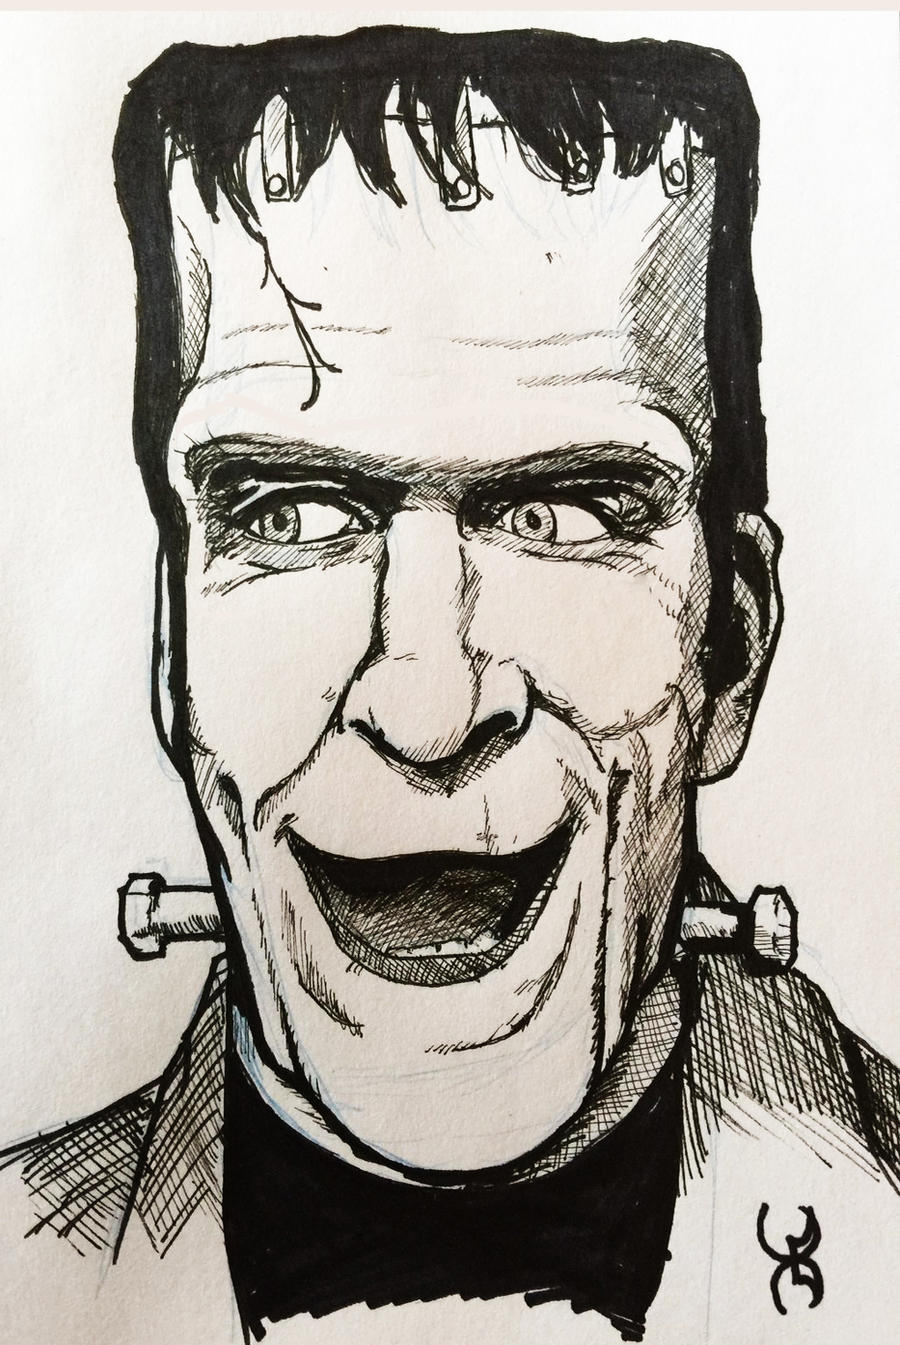 Drawlloween 13: Frankenstein (Nee Munster) by Kyohazard